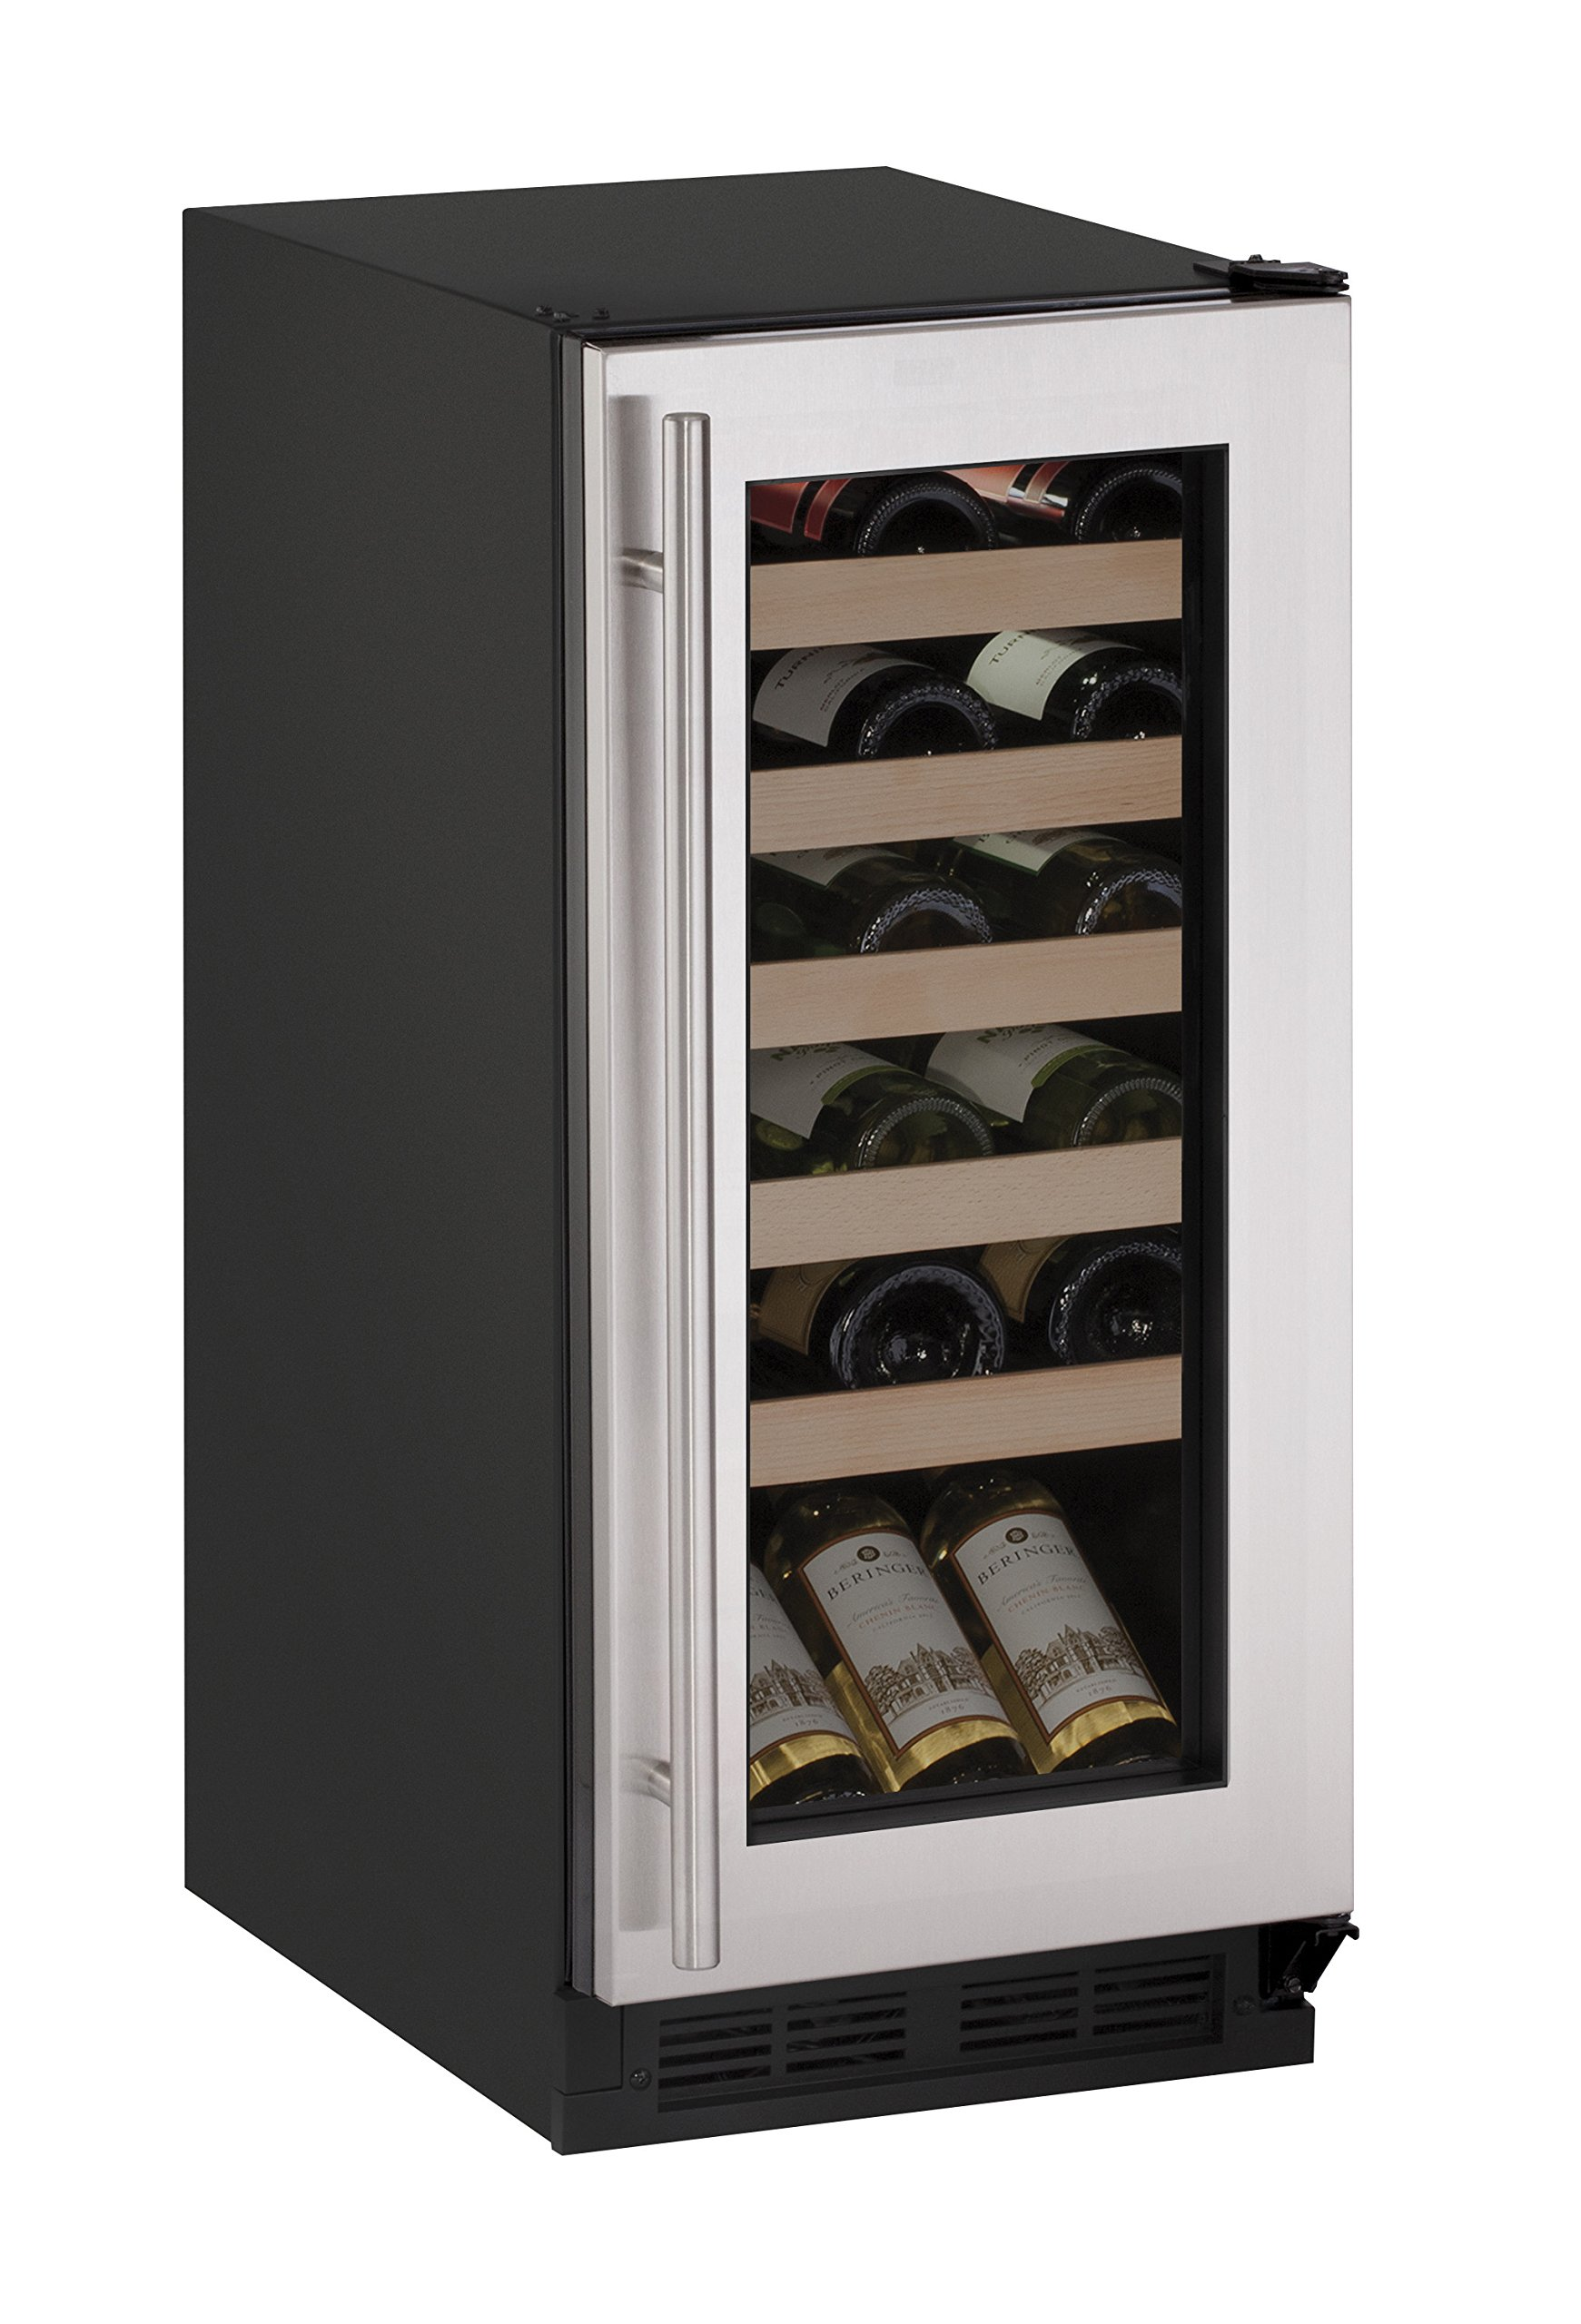 U-Line U1215WCS00A Built-in/Freestanding Wine Storage, 15'', Stainless Steel by ULINE